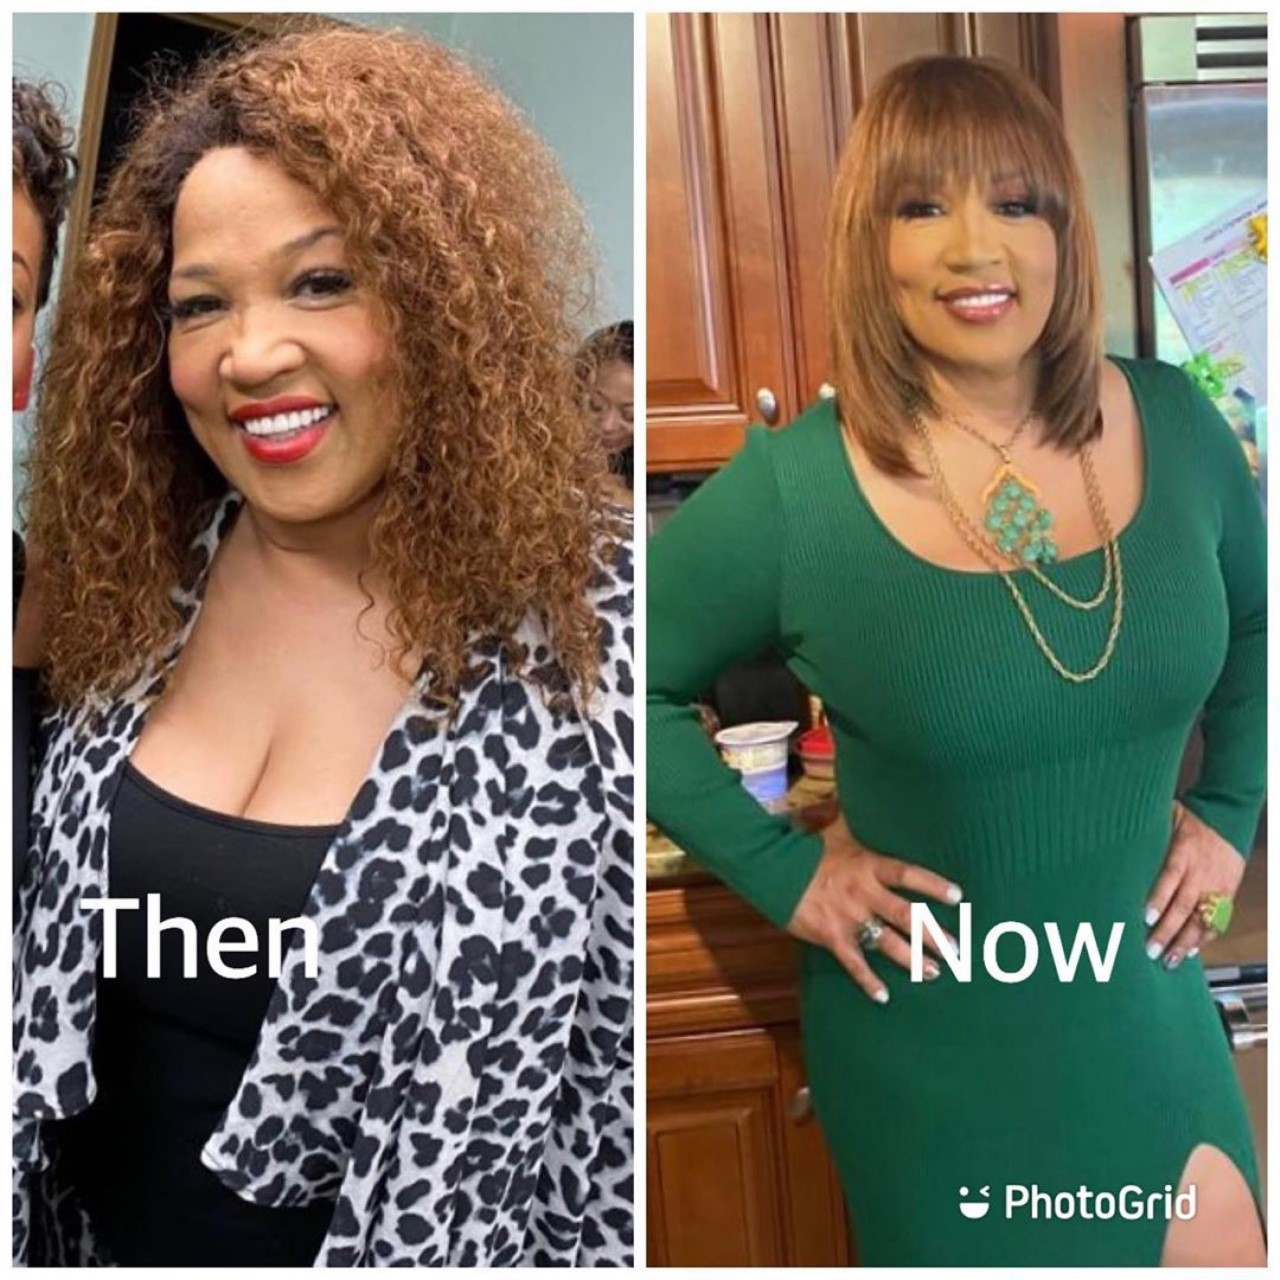 Awesome Kym Whitley wallpapers to download for free greenvirals